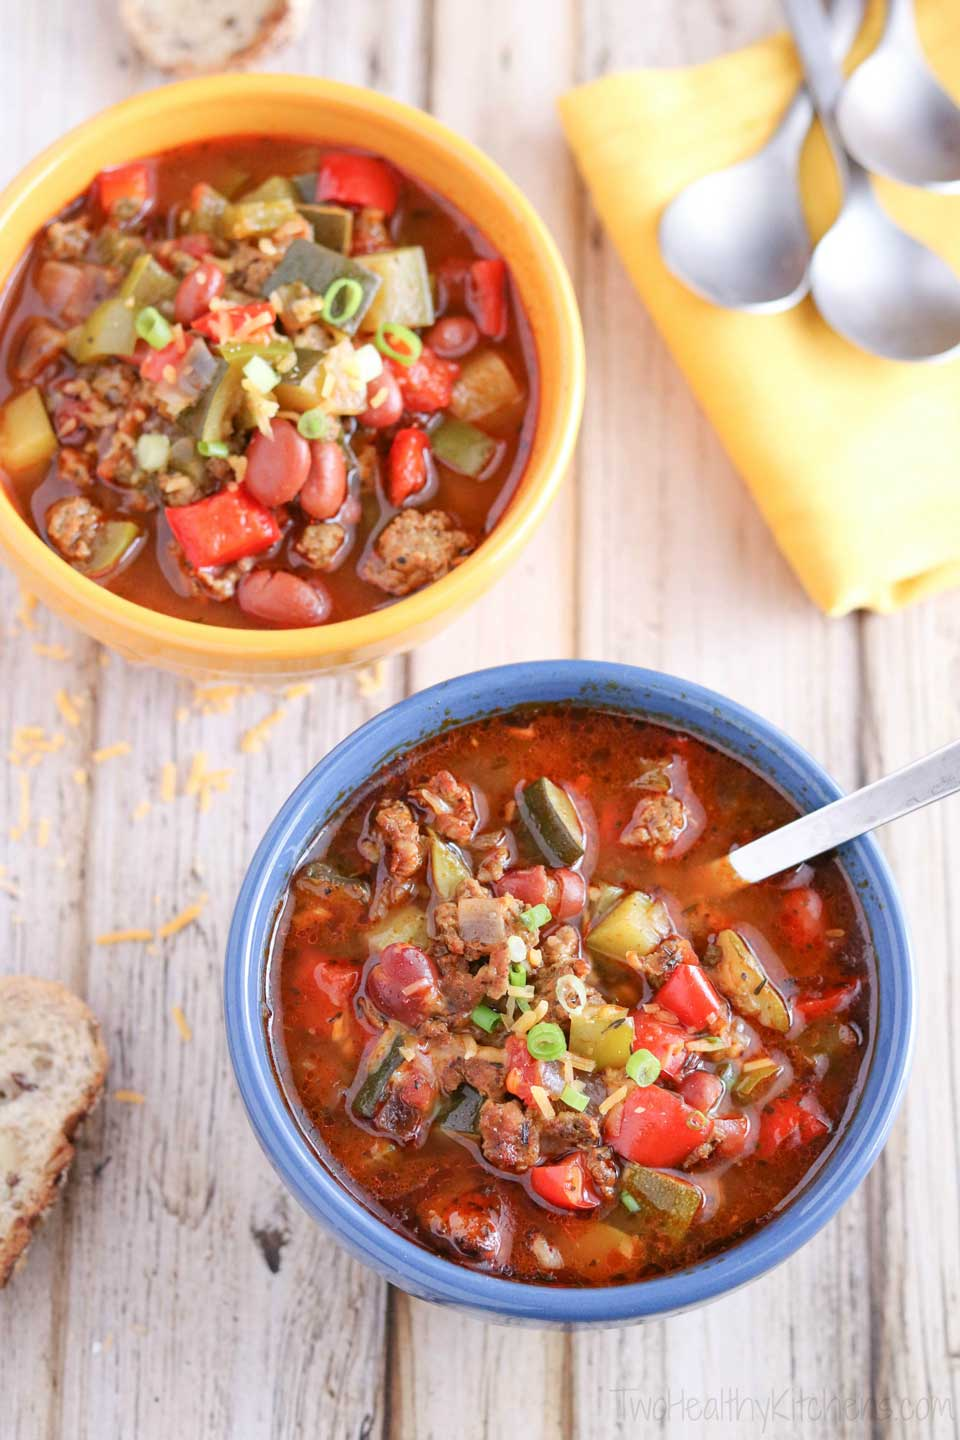 Indian-Spiced-Turkey-Chili-Two-Bowls-vert-watermarked